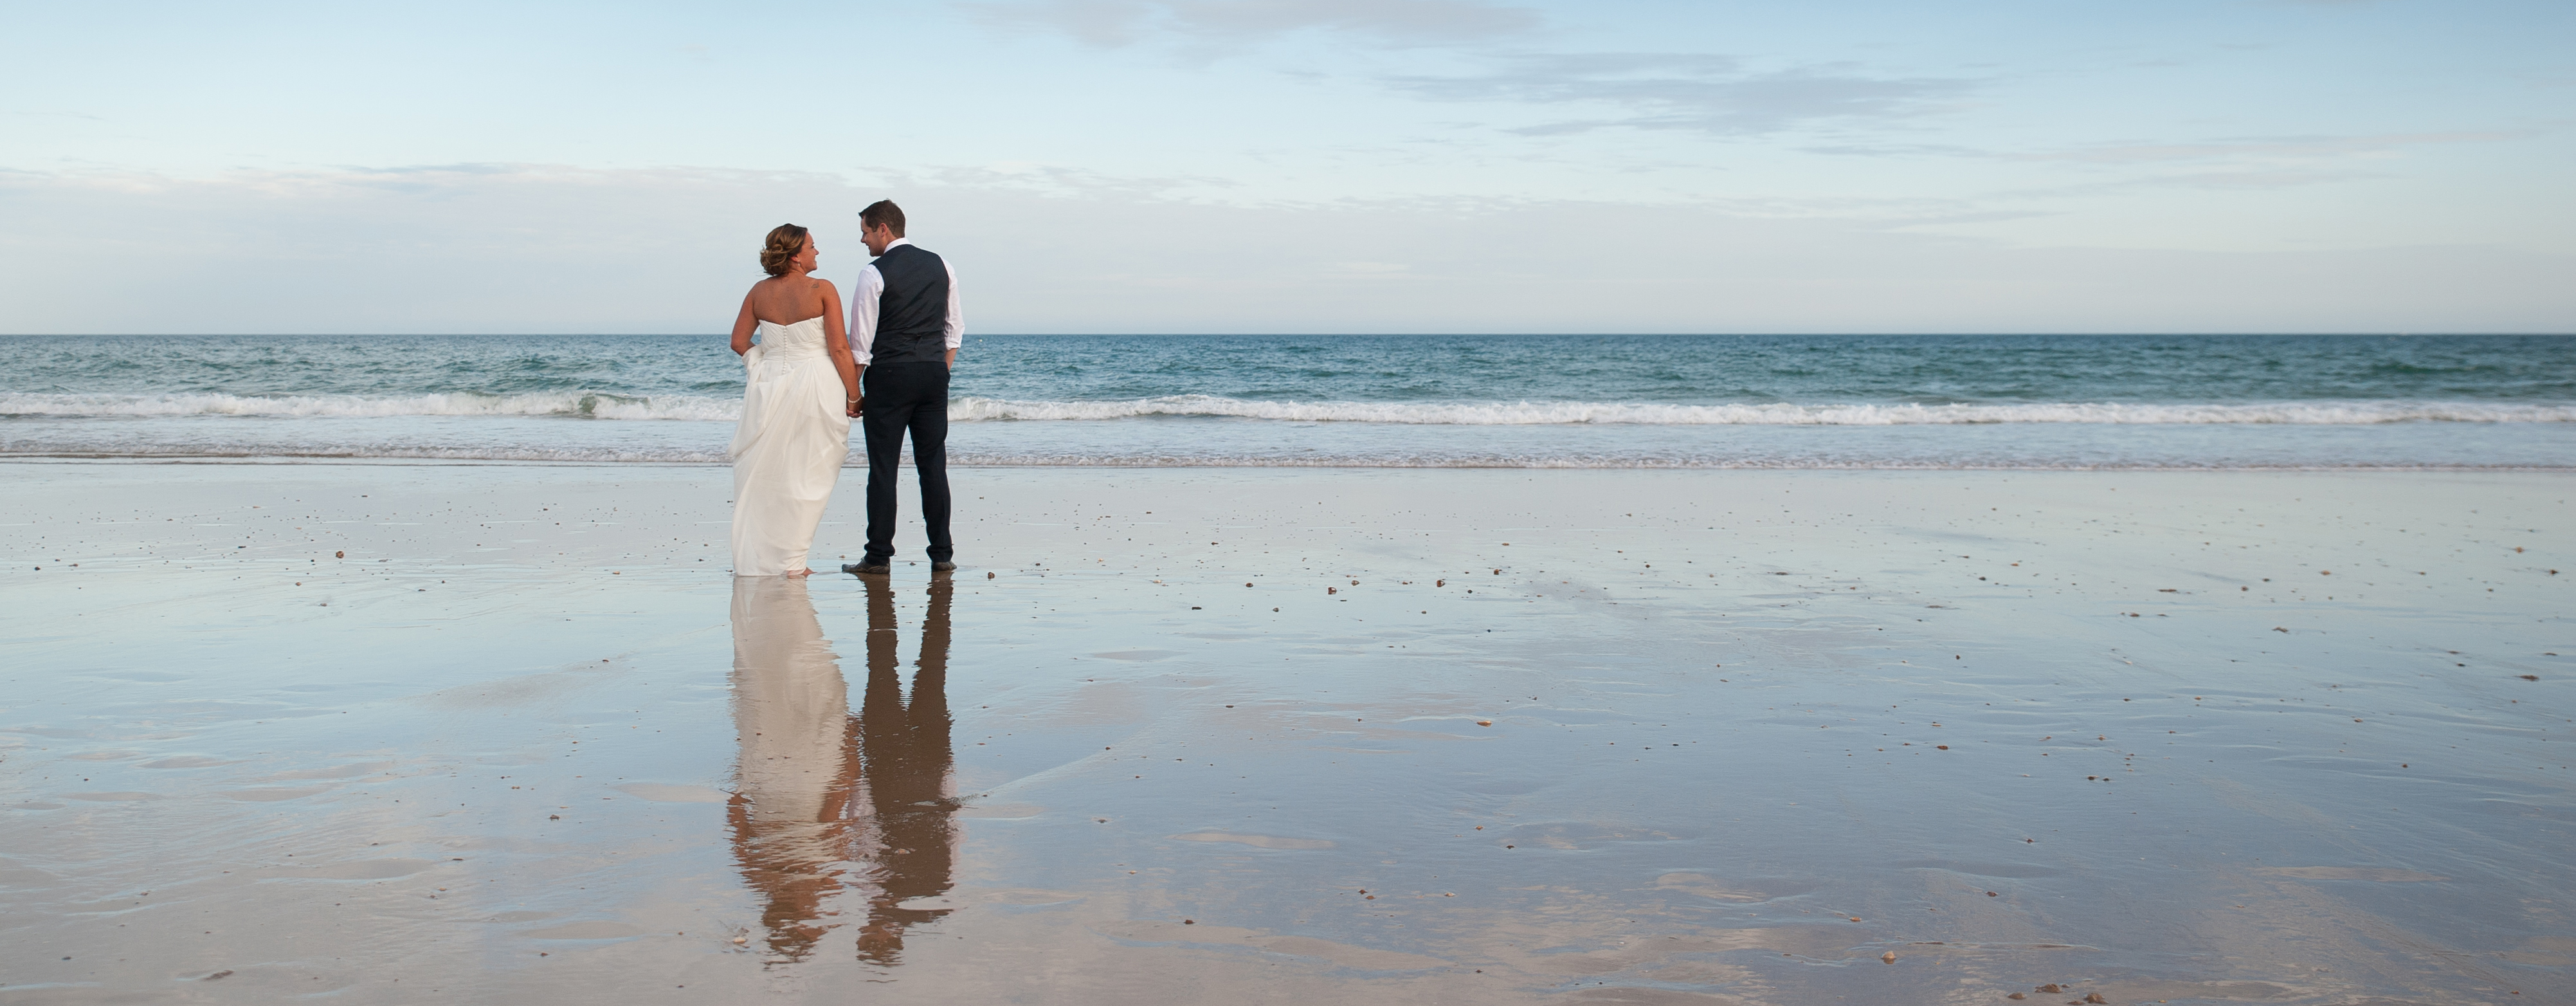 Beach Weddings Bournemouth Wedding Photography